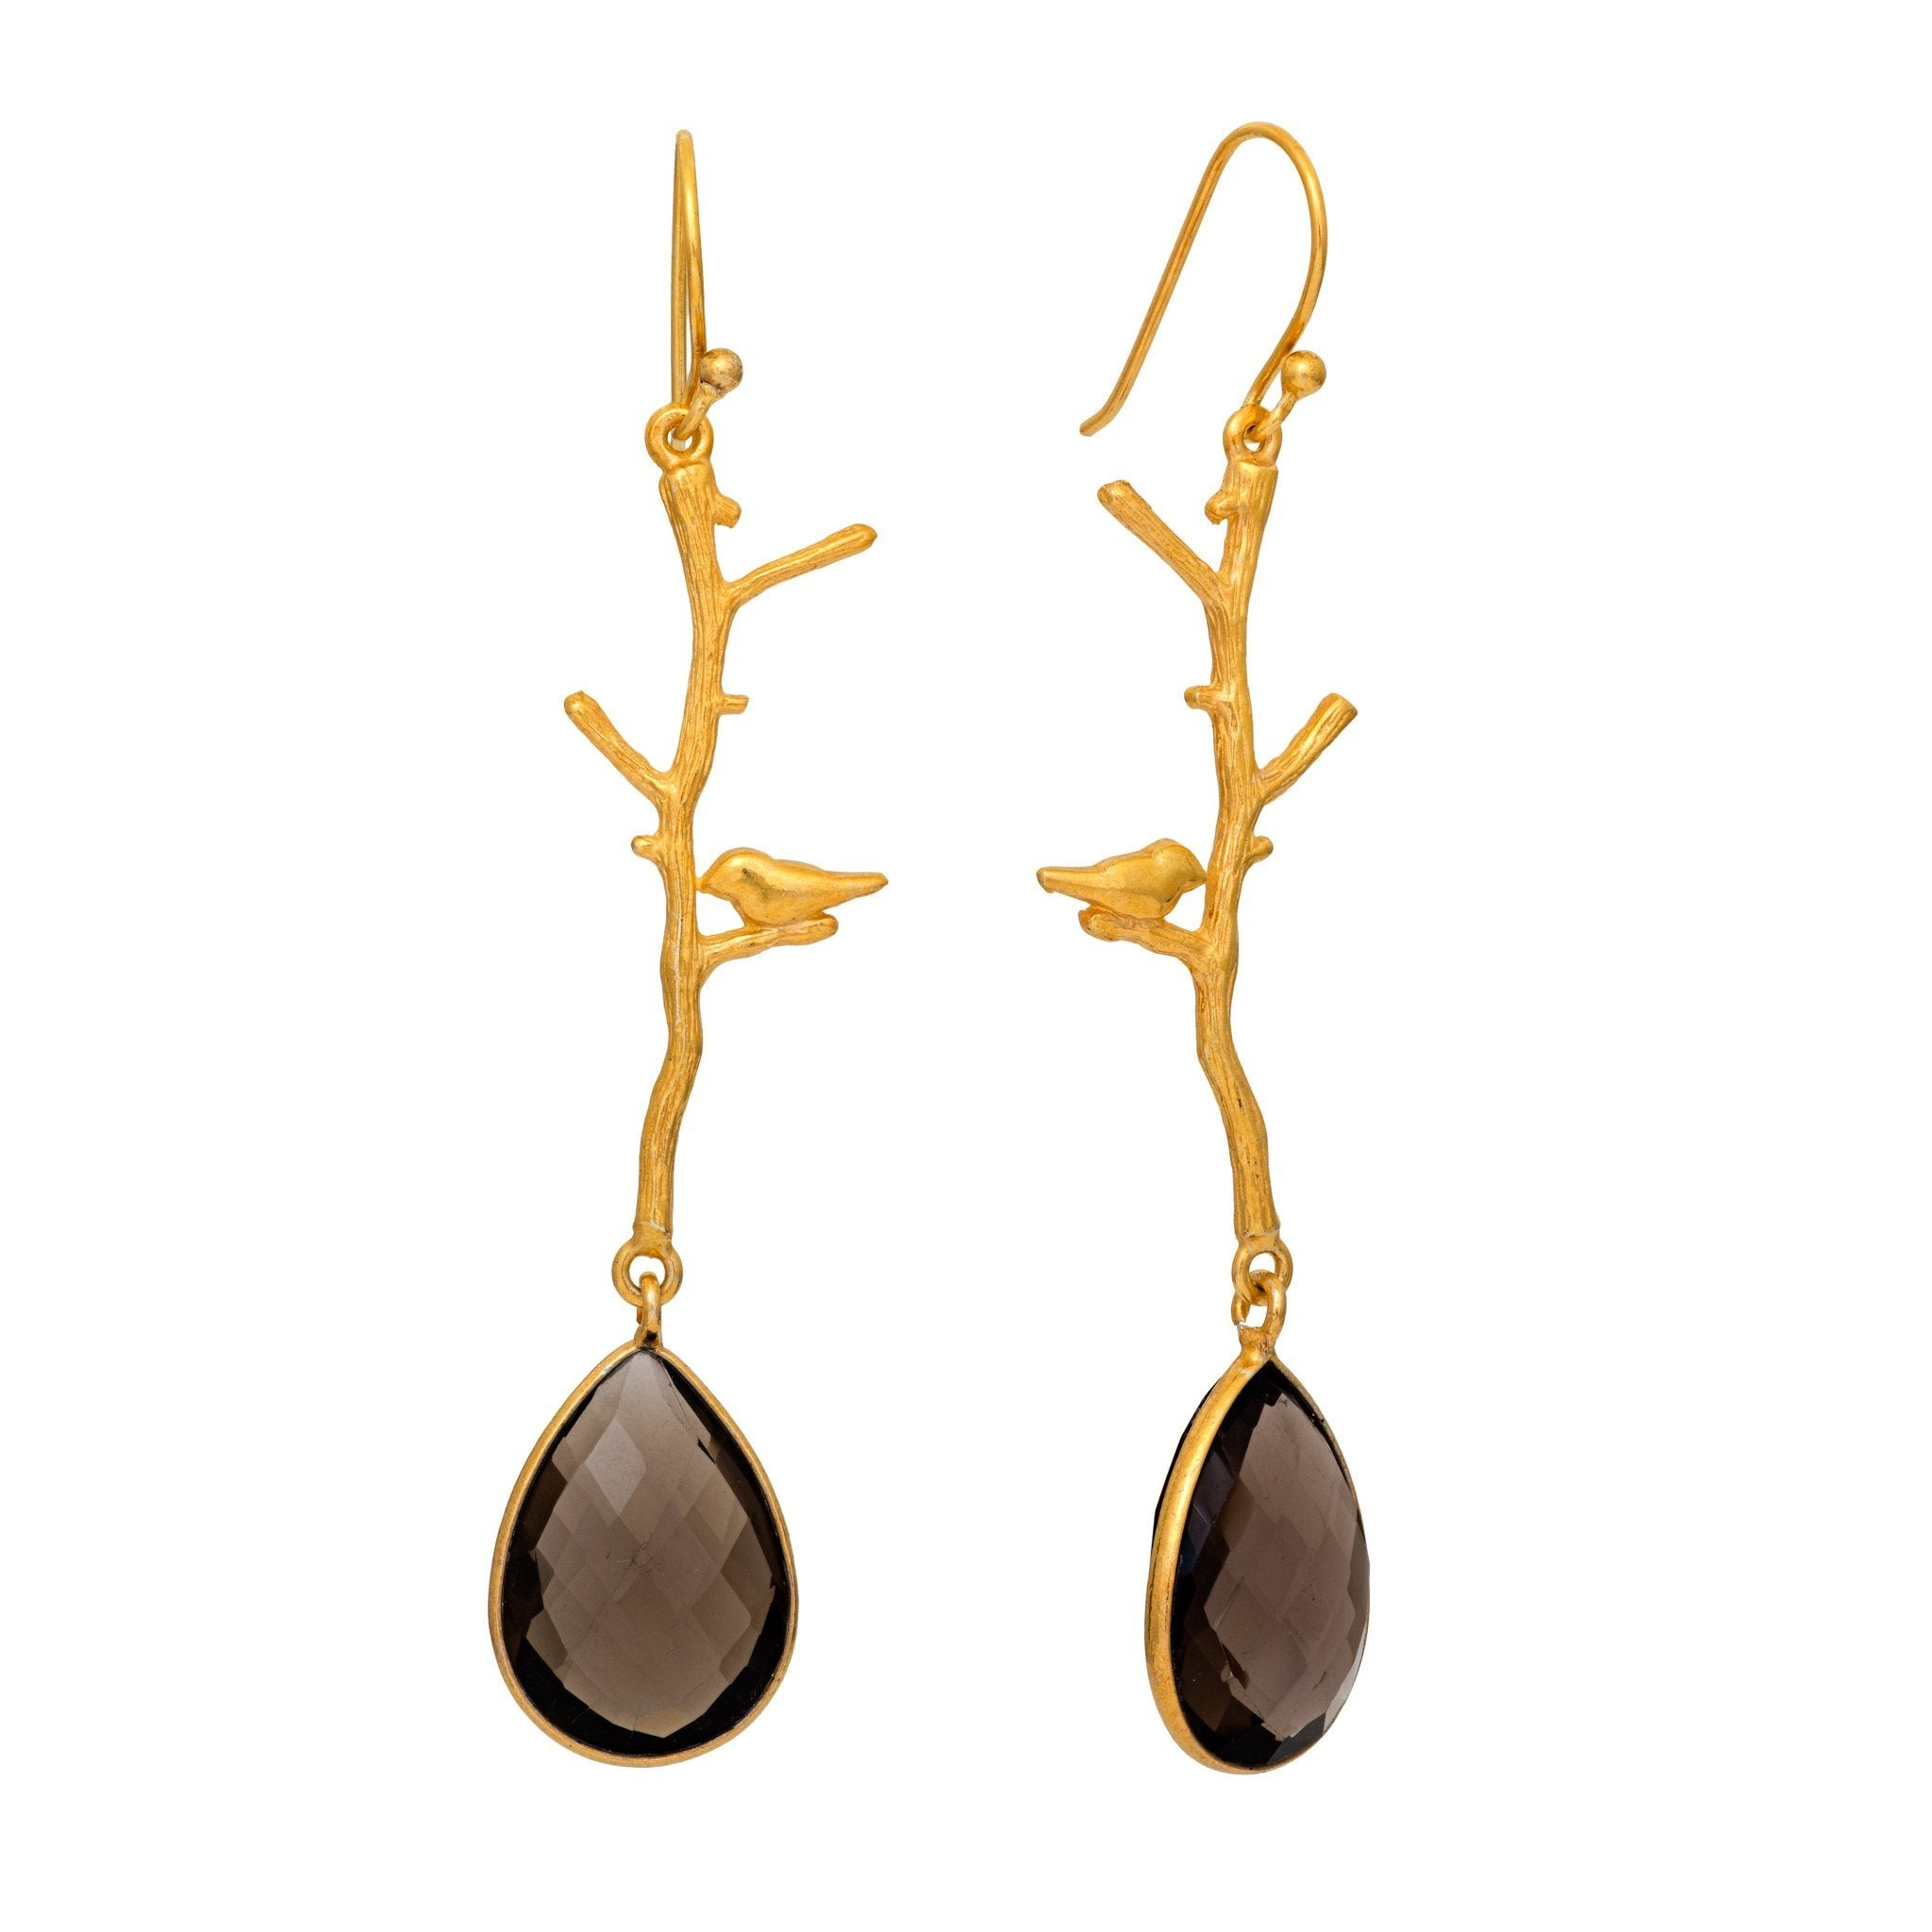 NOK smoky quartz earrings - MadamSiam